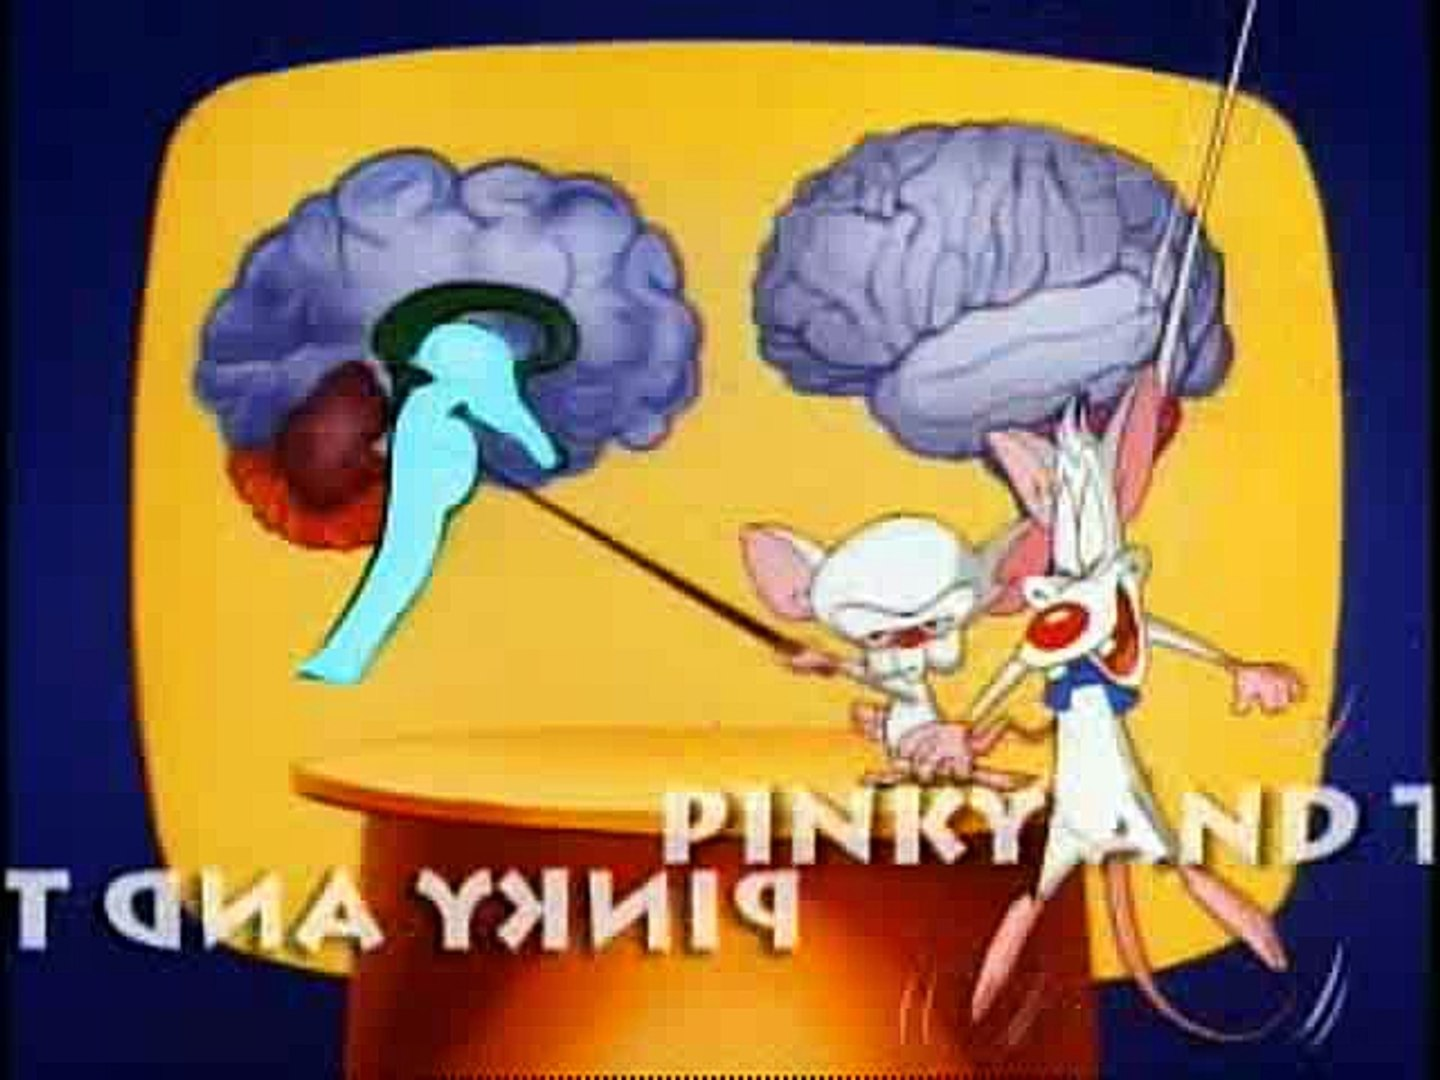 Pinky And The Brain - S1e18 E19 - The Third Mouse, The Visit